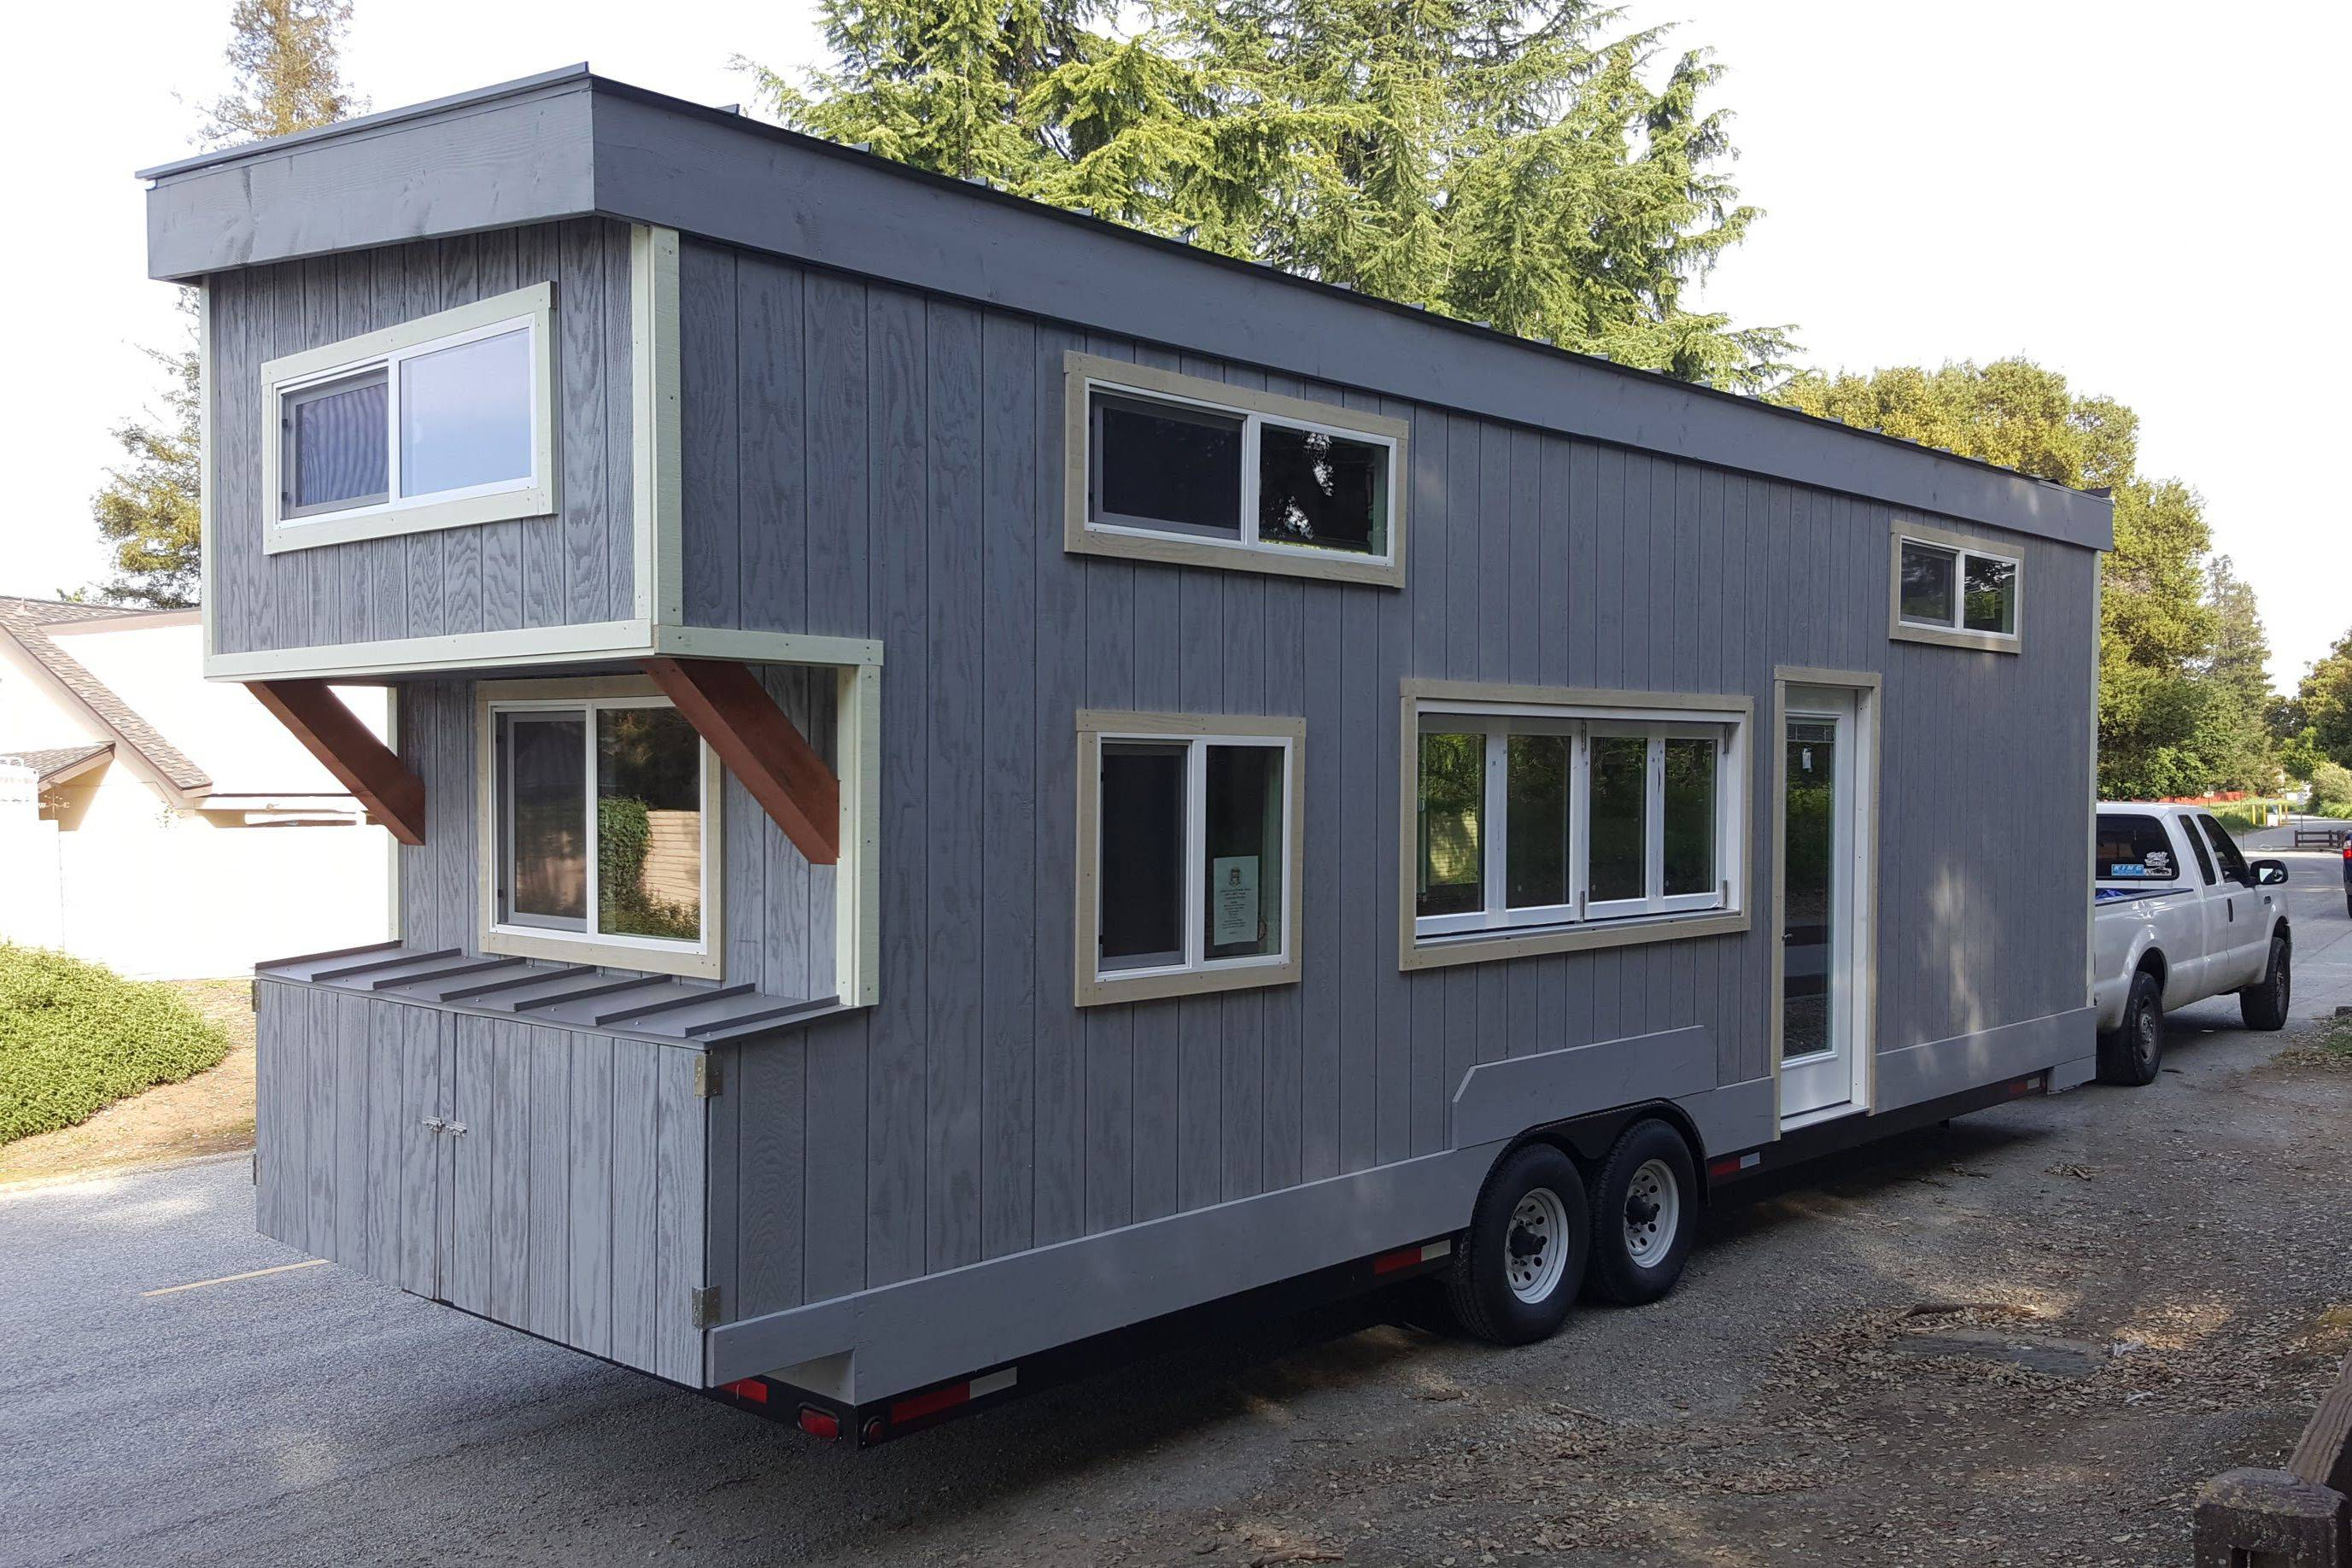 Tiny House on Wheels Shell The Spruce 5925e6255f9b cd57